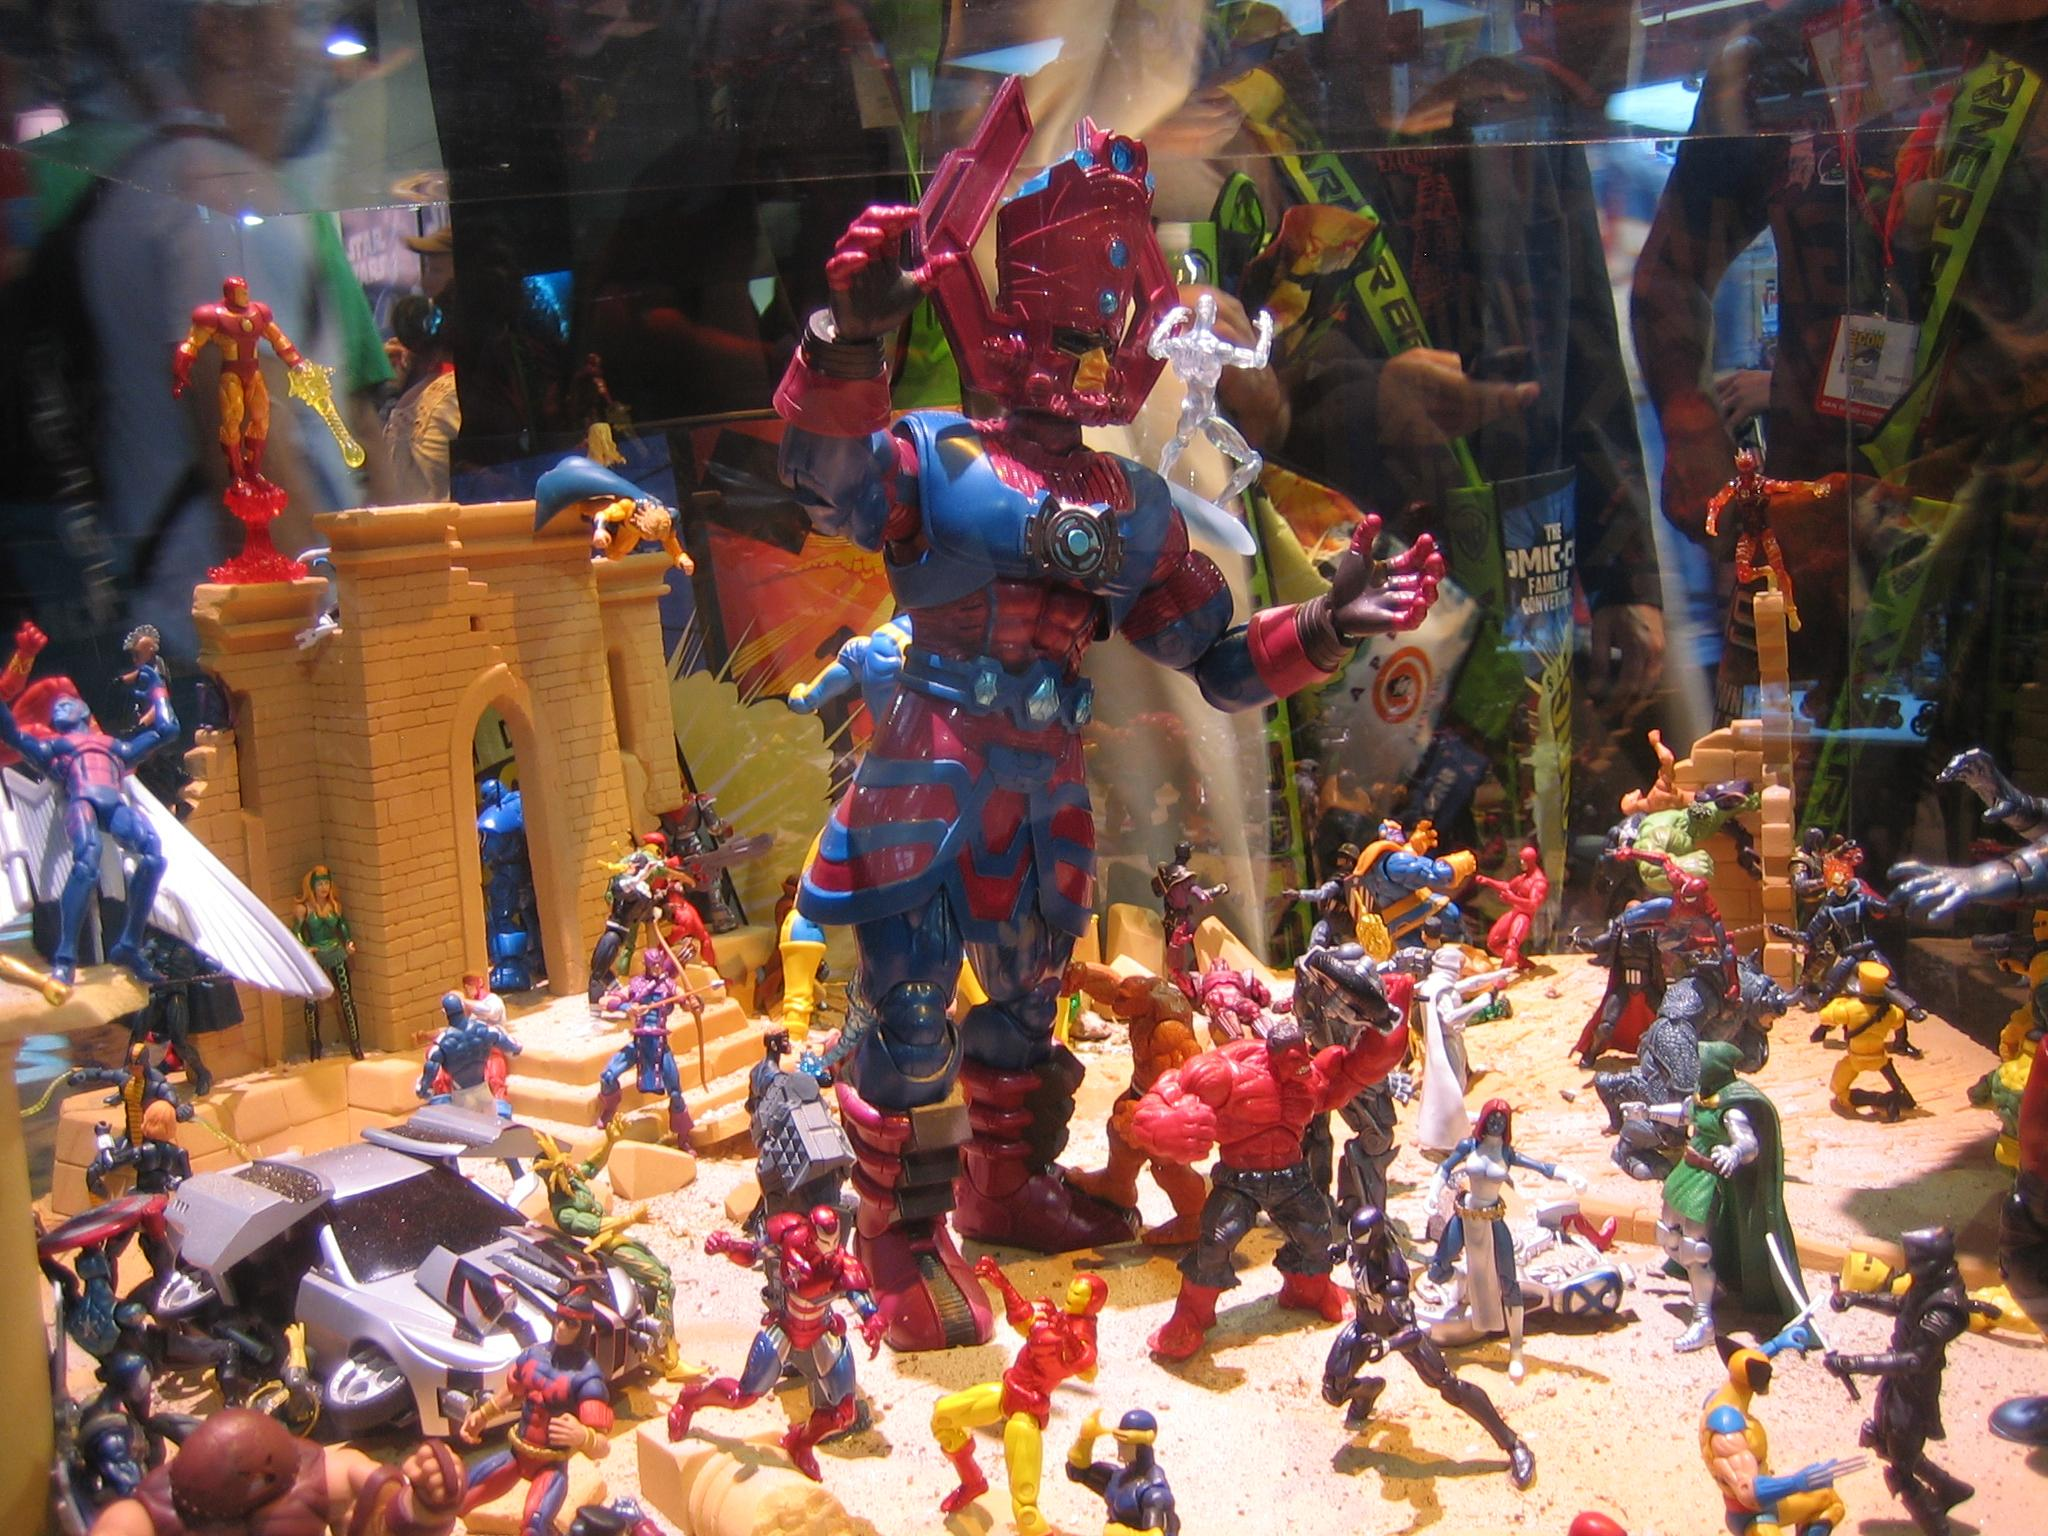 Make Your Own Diorama: Stunning Marvel Diorama Looks Like That Awesome Scene You